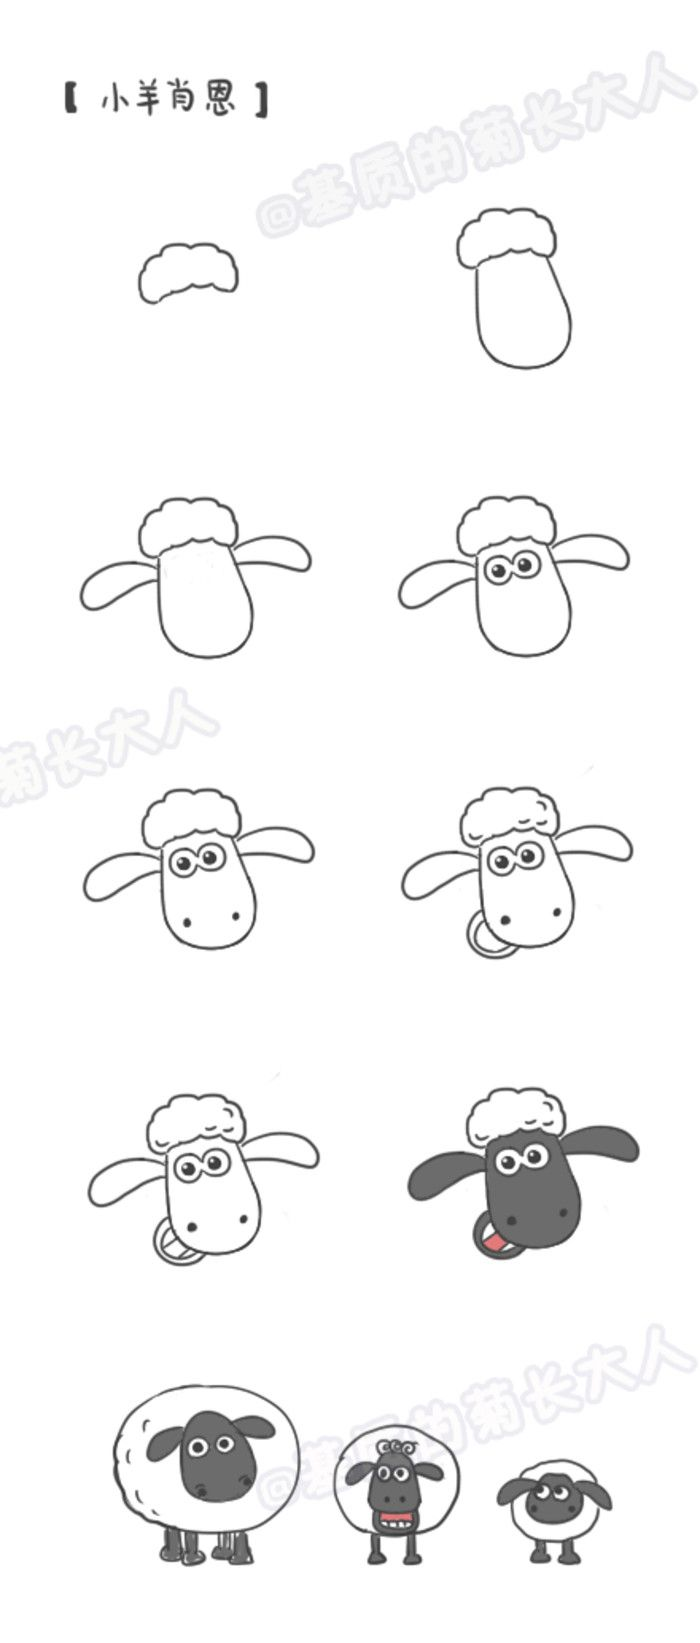 Simple steps to draw Shaun the Sheep! Ask children to draw it! Then Color it with Crayola Washable Broad Line Marker from shop.childscastle.com...